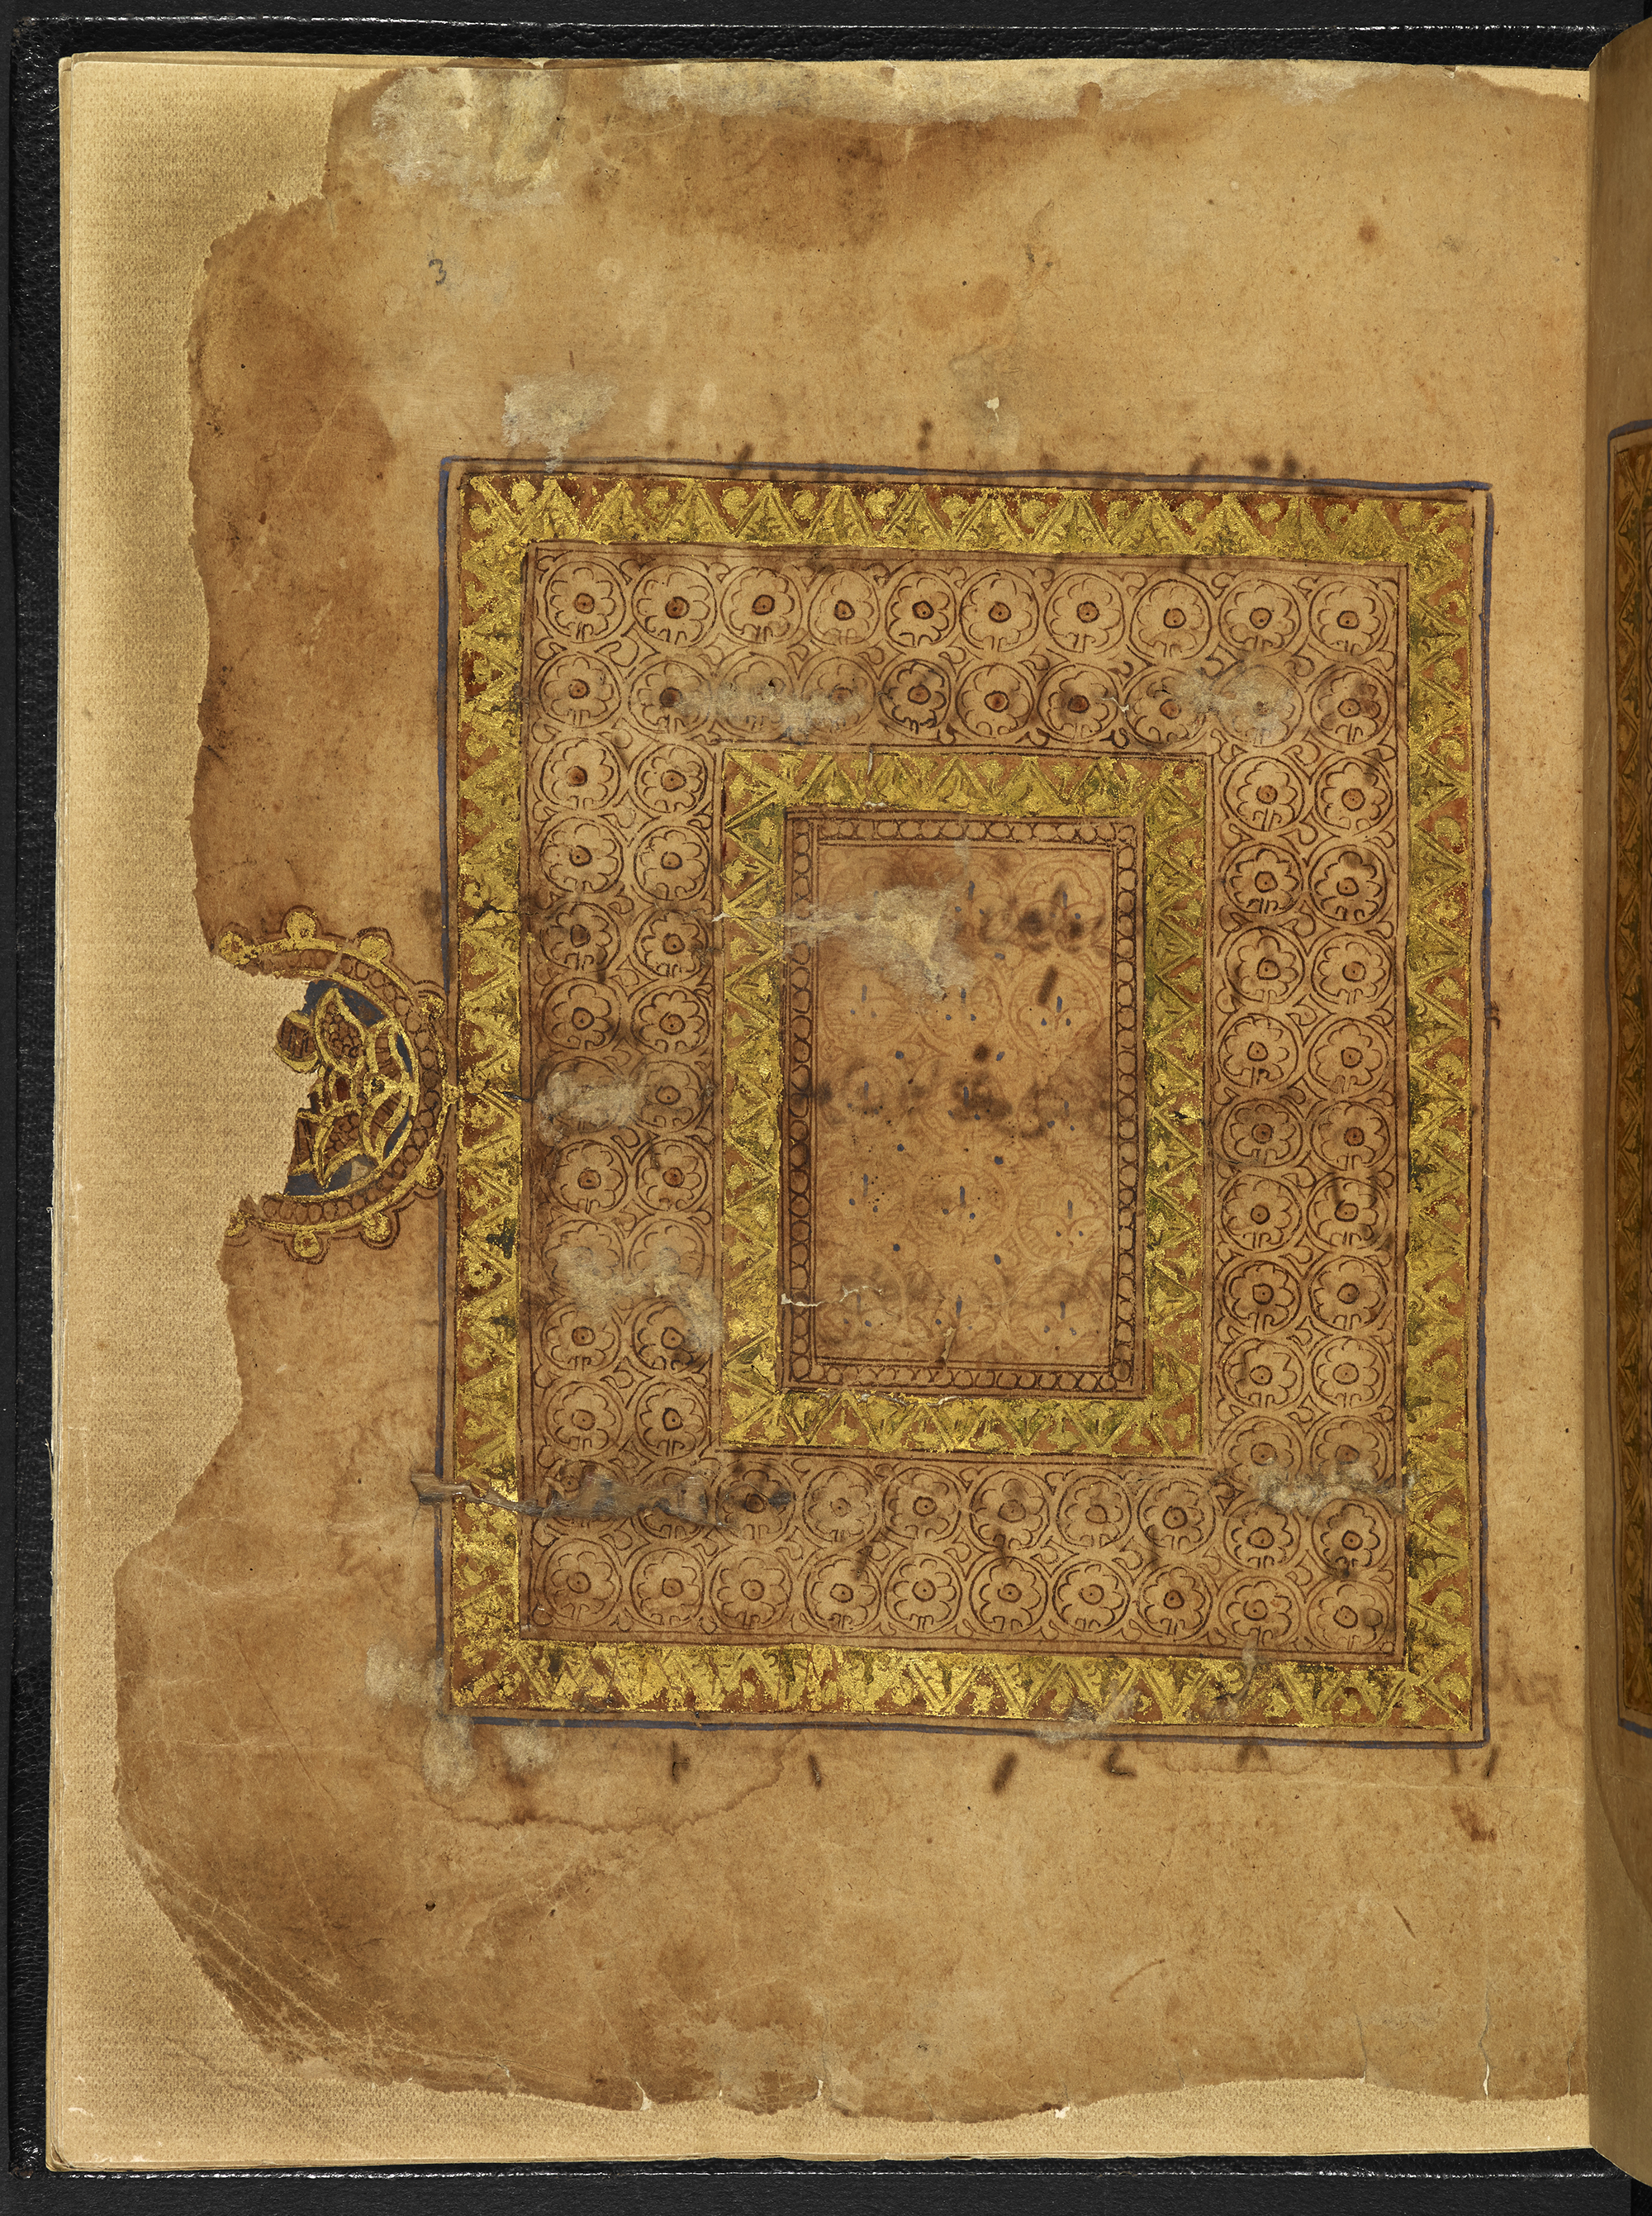 10th-century CE Hebrew Bible fragment from Palestine or Egypt (Or 2540, f. 3r; compare with a Qur'an written around 900 CE and kept in the Chester Beatty Library in Dublin), Hebrew Manuscripts Digitisation Project, British Library